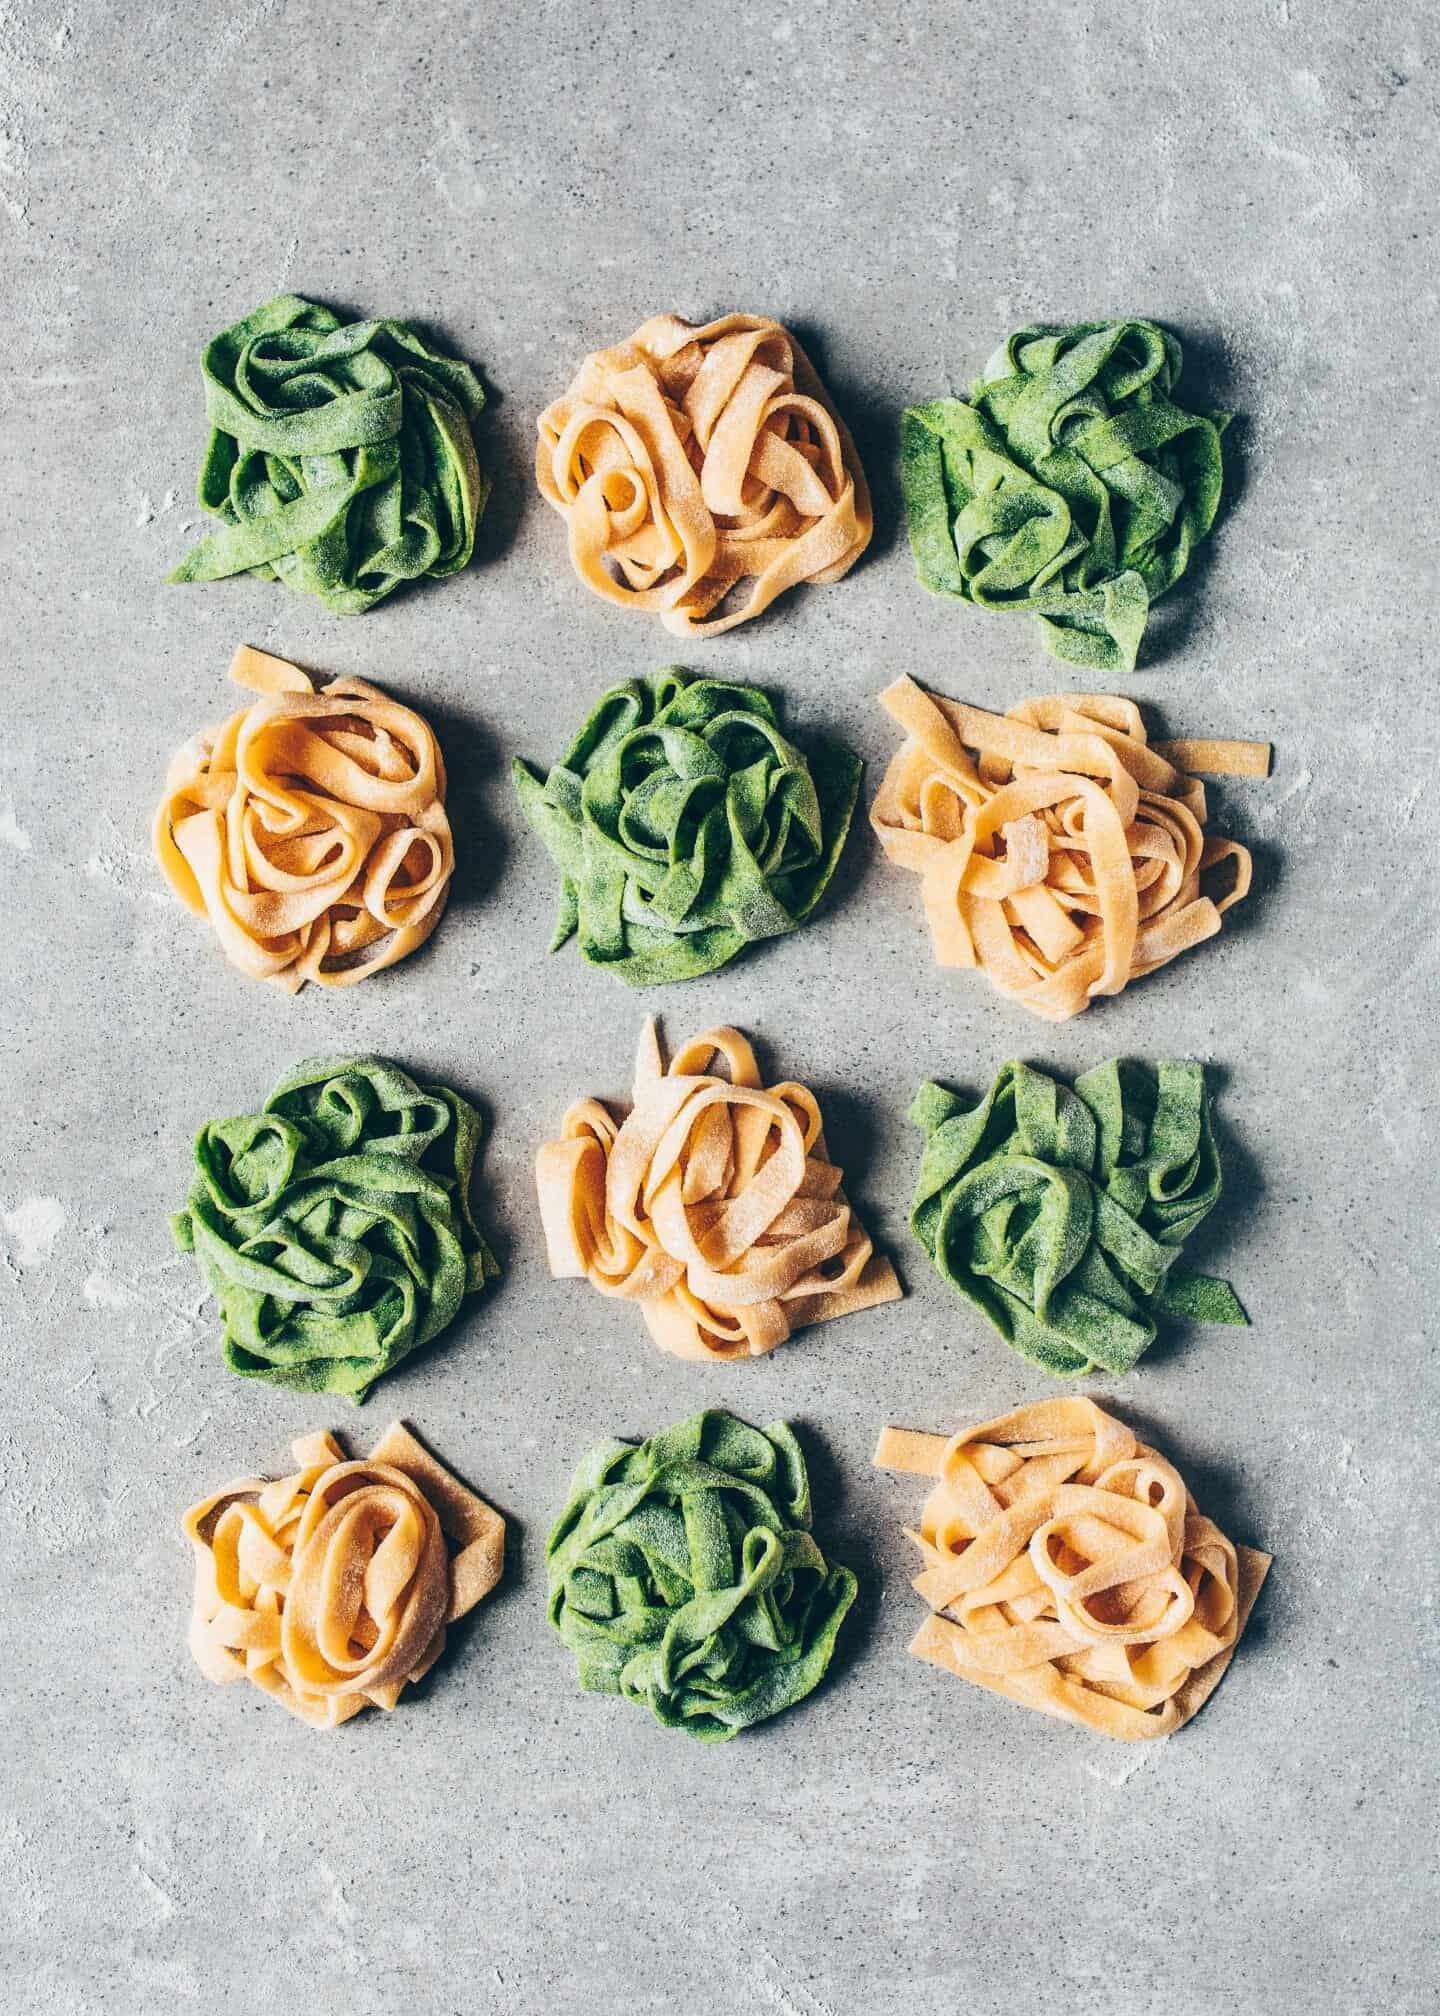 This quick & easy Homemade Vegan Pasta Recipe (Eggless Pasta Dough) can be made without a noodle machine in a few simple steps (pictures below). There's also an option for how to make green Spinach Pasta.